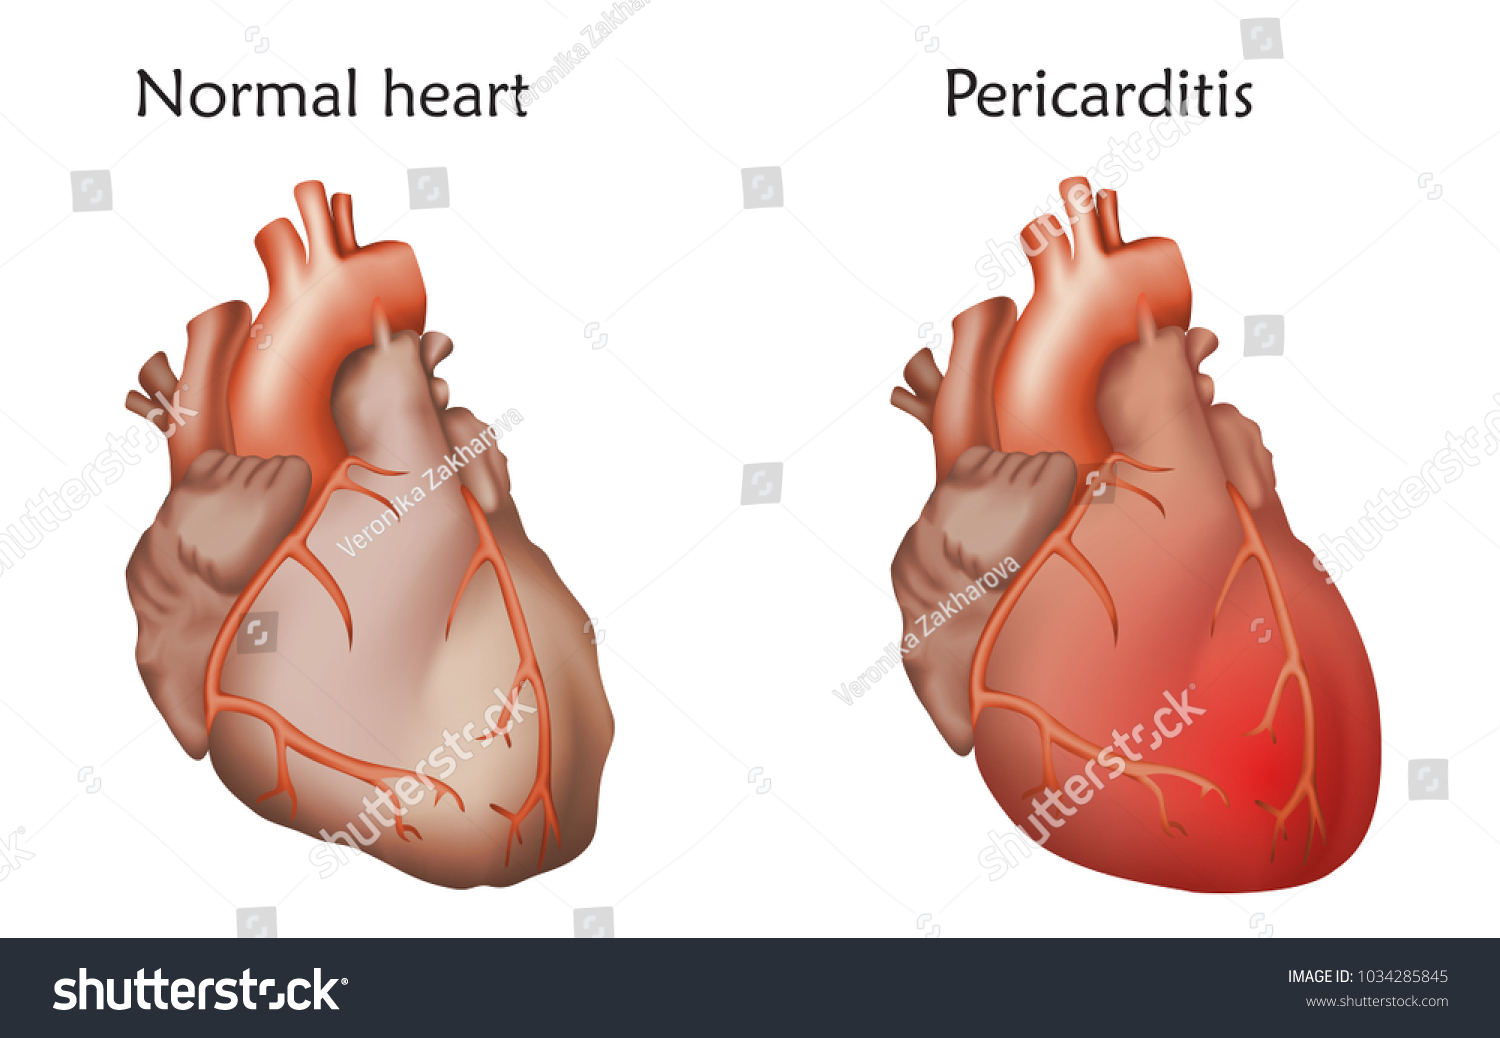 Pericarditis Inflammation Pericardium Damaged Normal Heart Stock ...